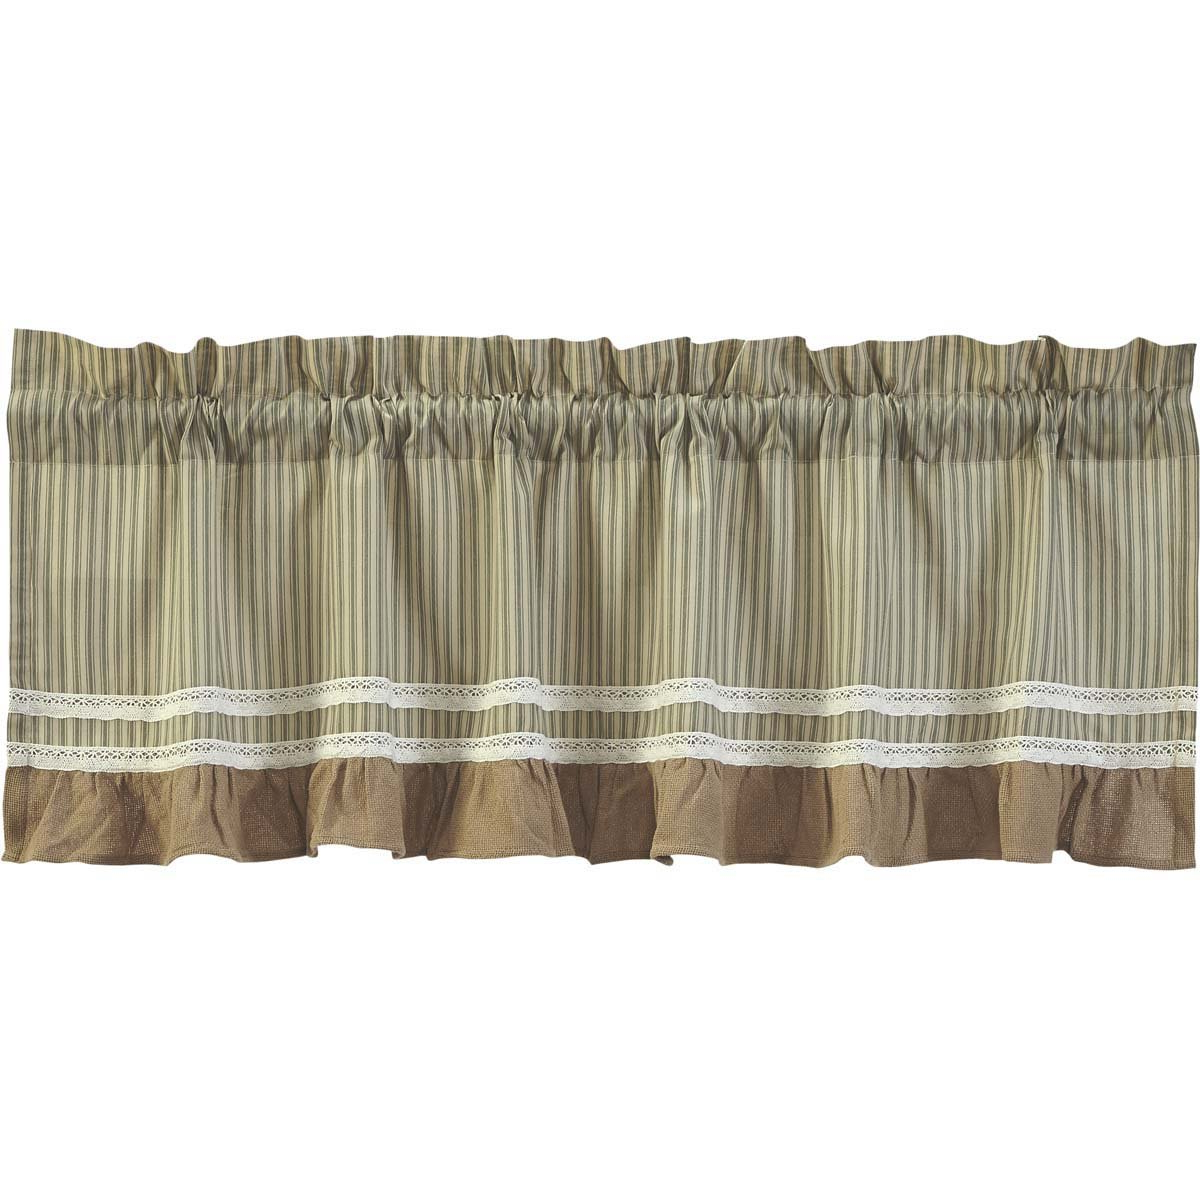 "Most Recently Released Rod Pocket Cotton Striped Lace Cotton Burlap Kitchen Curtains Throughout Vhc Brands Classic Country Farmhouse Kitchen Window Curtains – Kendra Stripe White Valance, 19"" X 90"", Red (View 2 of 20)"